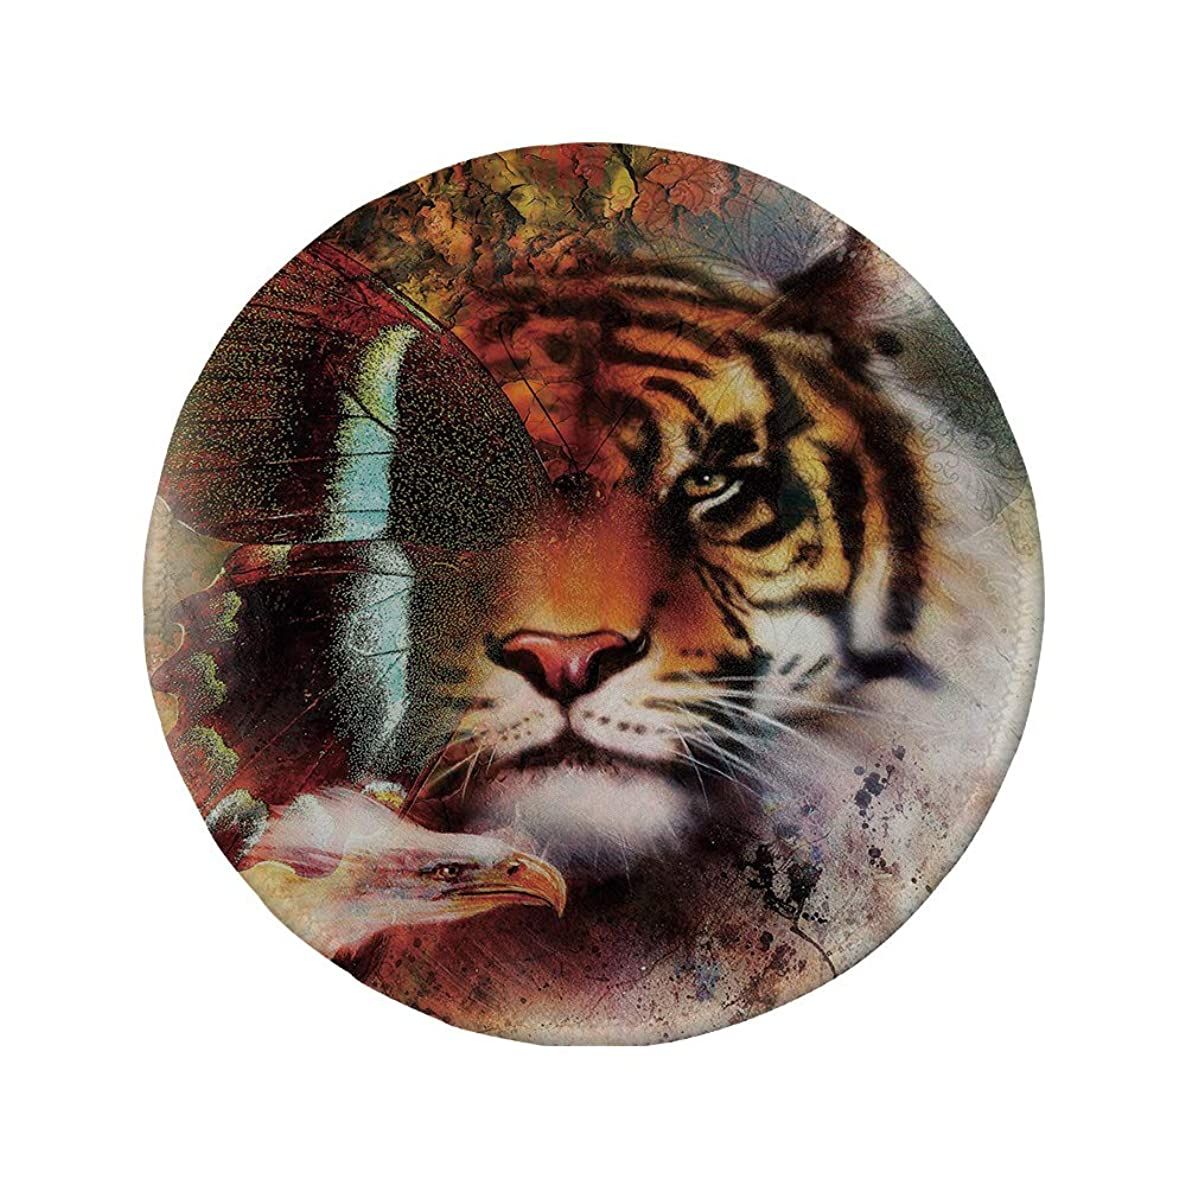 Non-Slip Rubber Round Mouse Pad,Tiger,Various Symbols of Nature Large Bengal Cat Bald Eagle Butterfly on Vibrant Backdrop Decorative,Multicolor,11.8